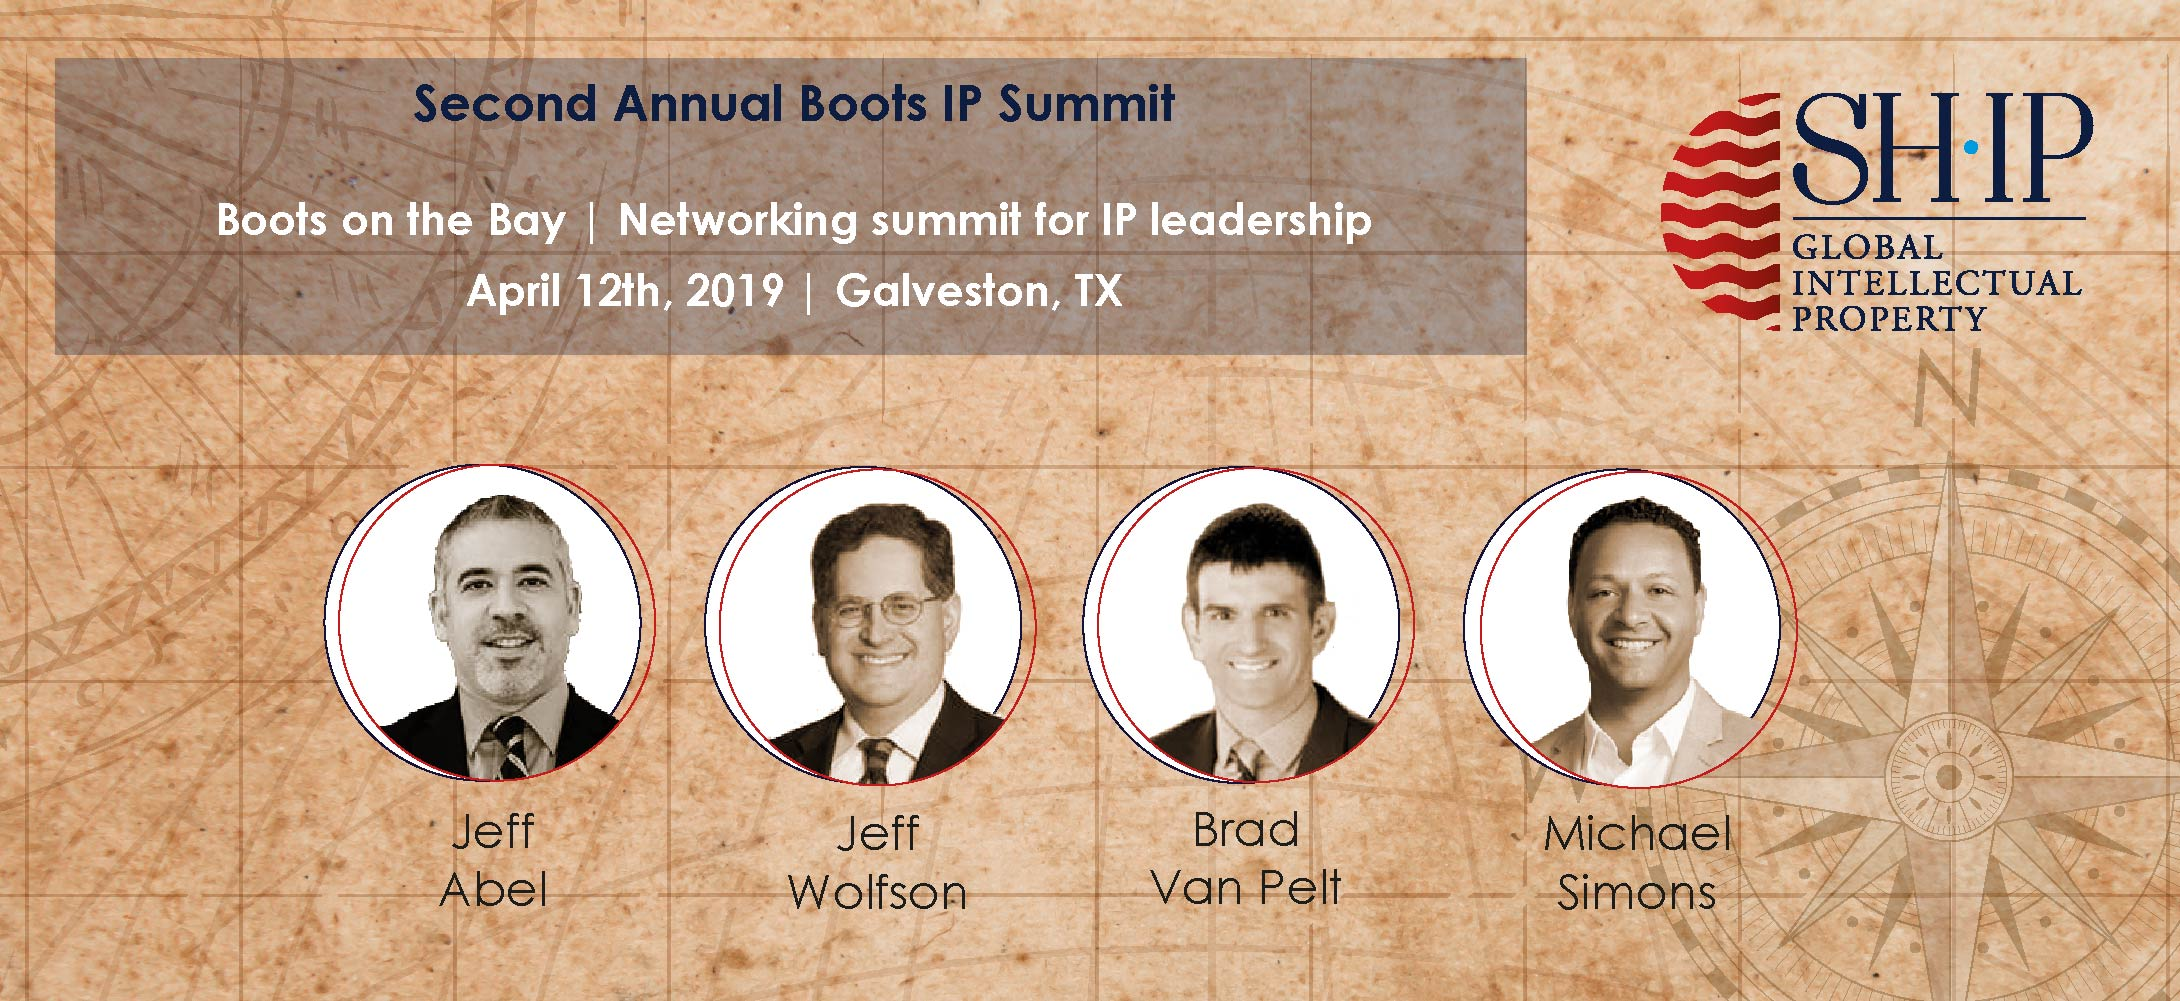 Outside Counsel Panelist at Boots Annual IP Summit announced!